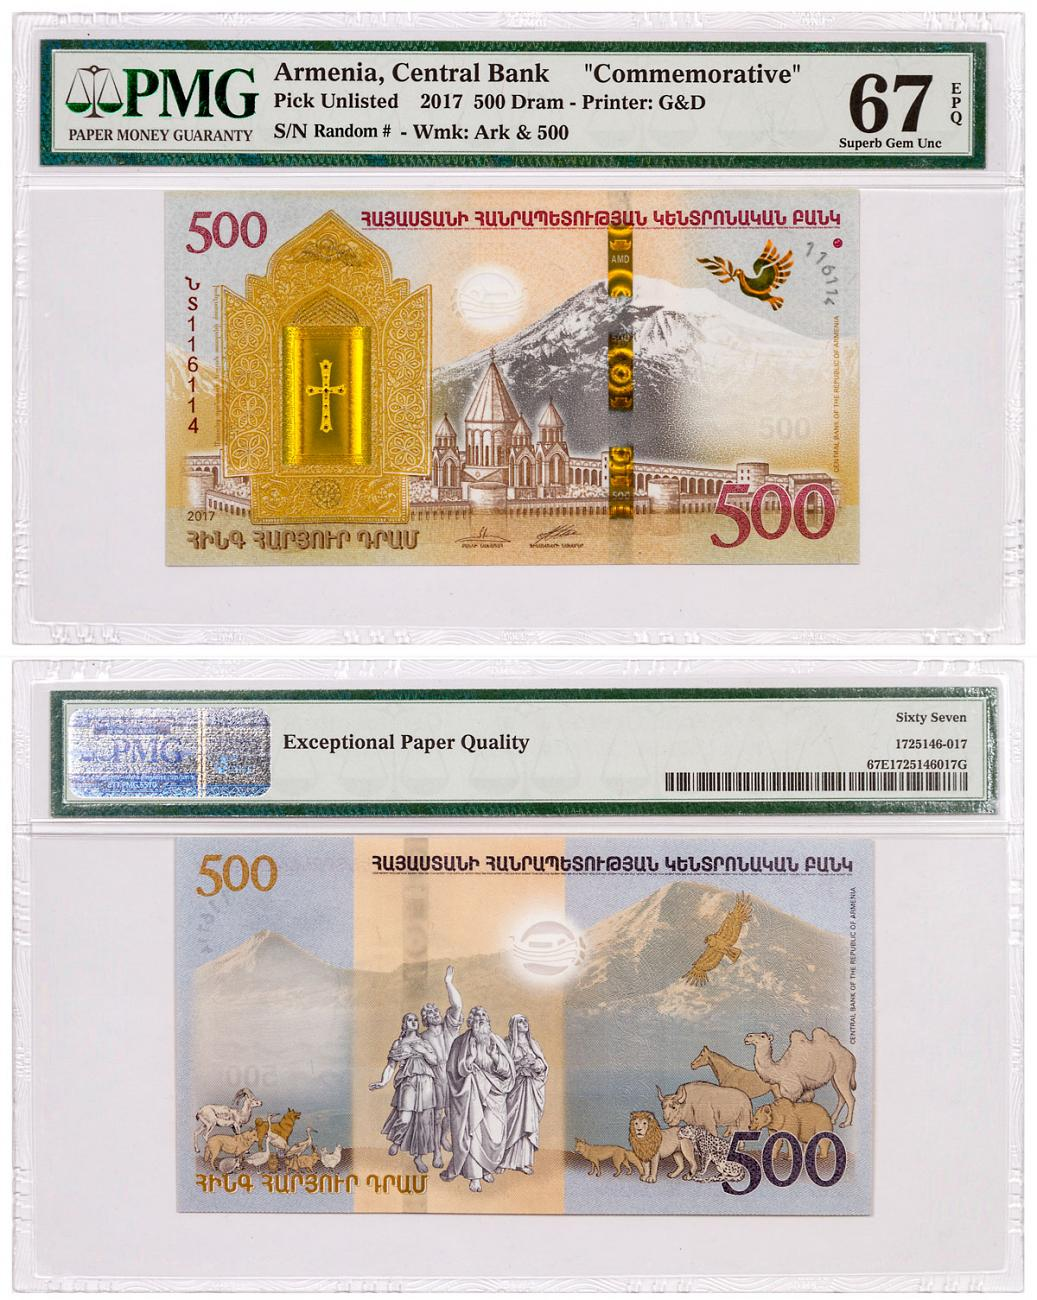 2017 Armenia Central Bank Commemorative 500 Dram Note PMG Superb Gem Unc 67 EPQ